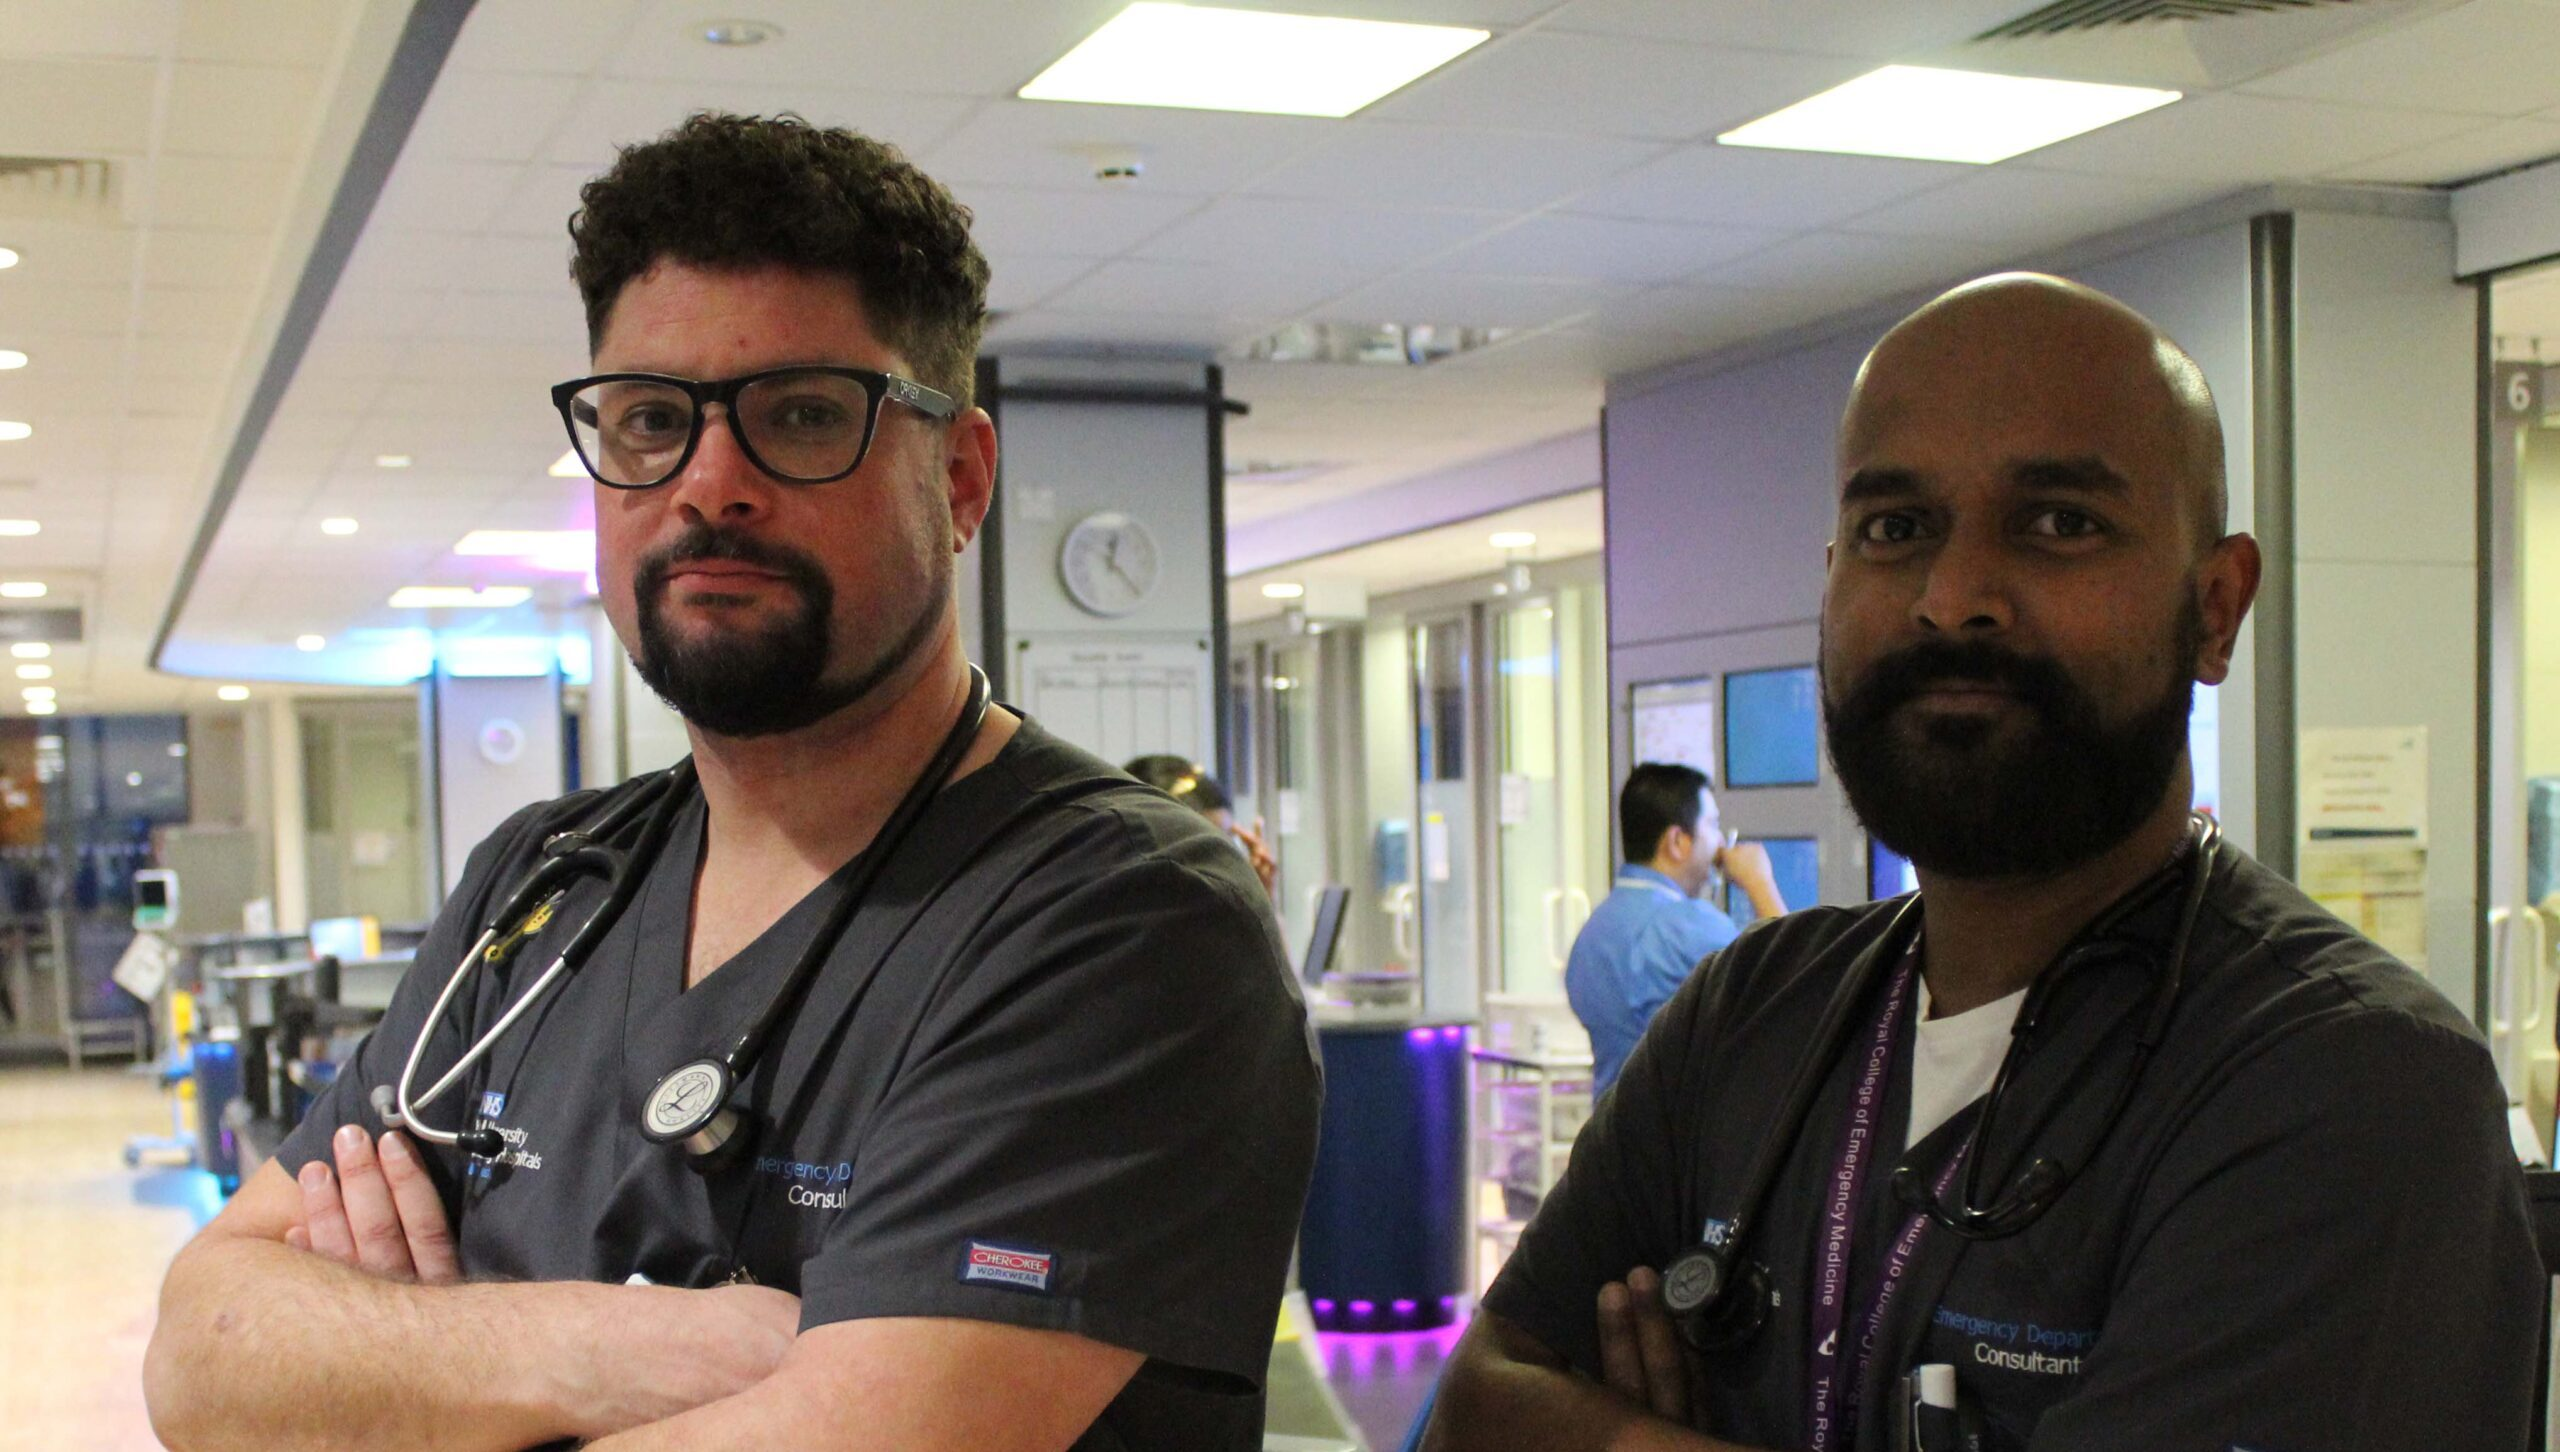 Hull A&E staff to feature in new six-part documentary